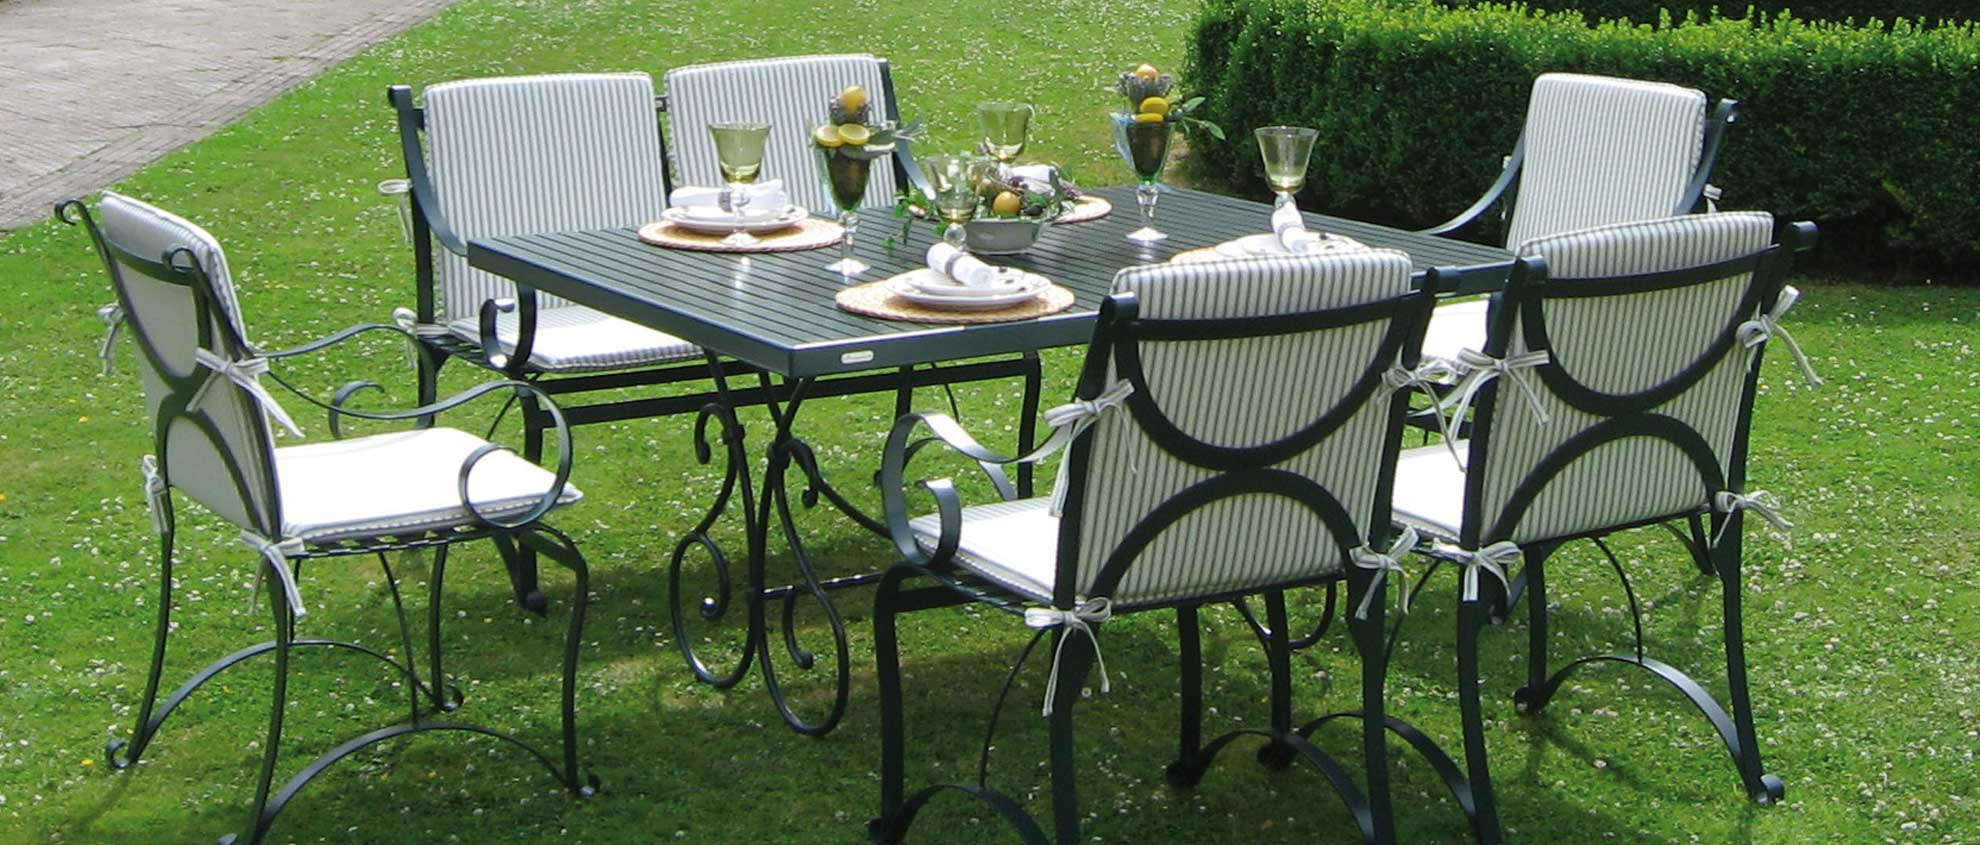 home edelstahl gartenm bel bevergarden. Black Bedroom Furniture Sets. Home Design Ideas